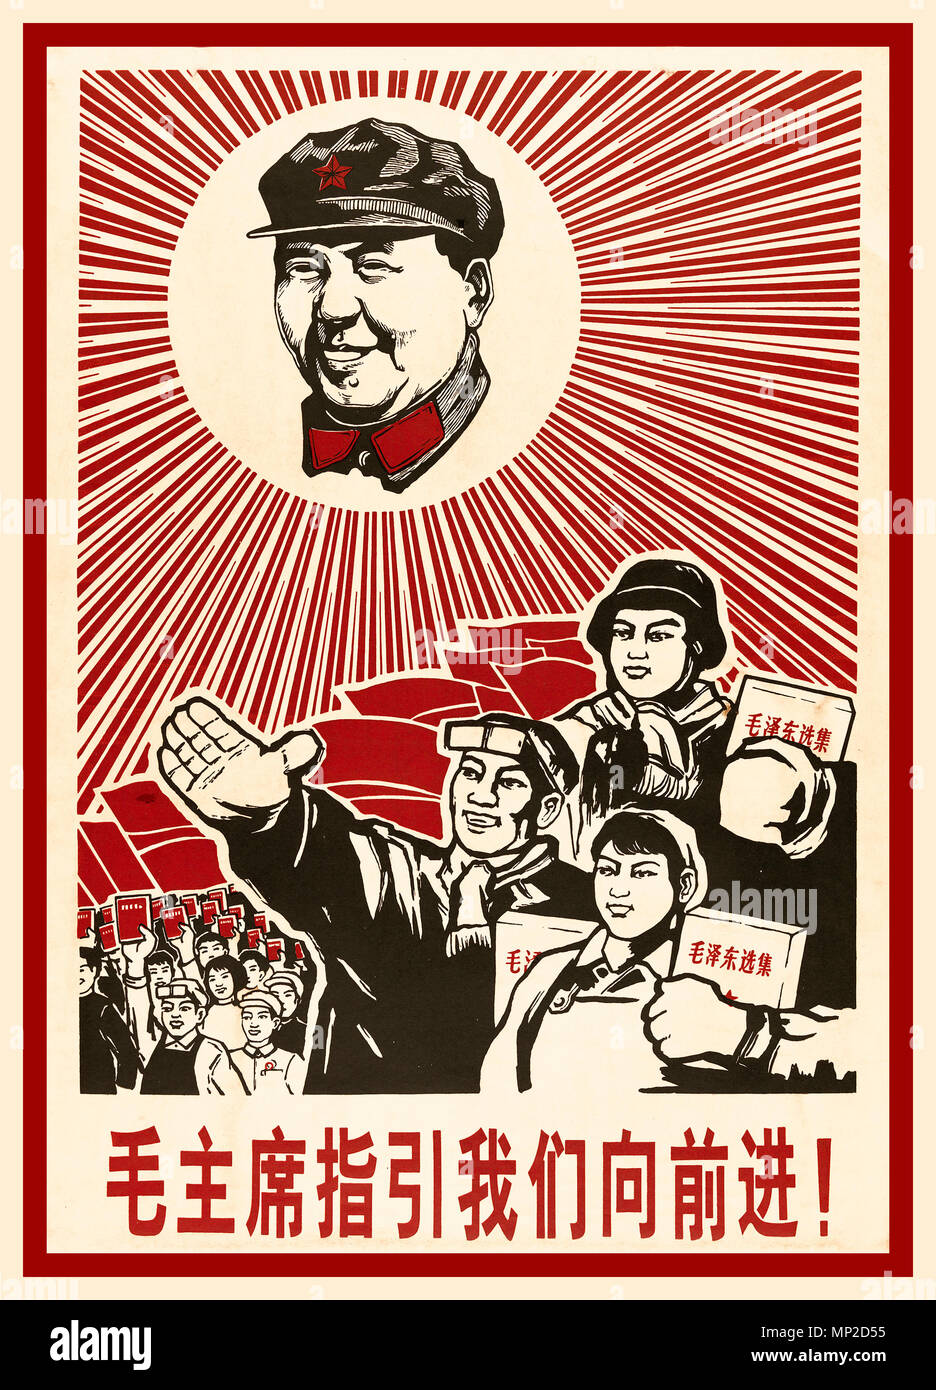 Vintage 1960's Chinese Propaganda Poster 'Chairman Mao leads us Forward,' 1968  Shaomin Li Chinese propoganda posters - Stock Image